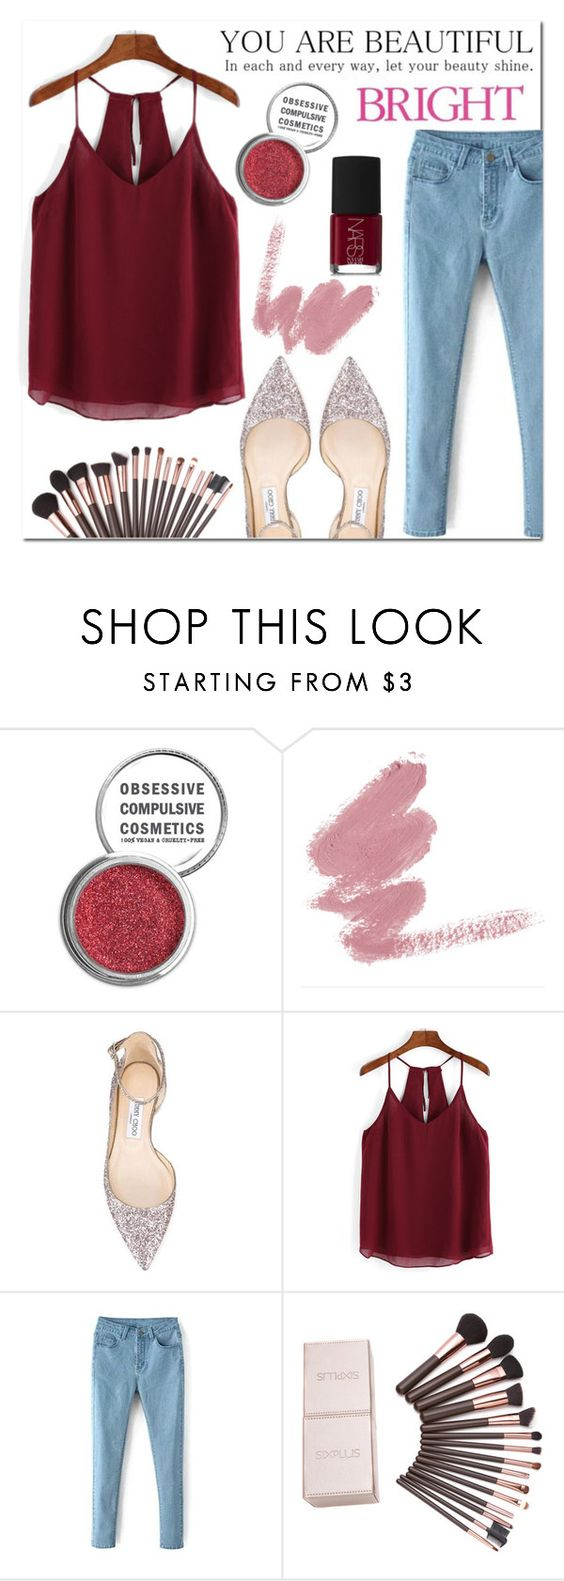 """""""RED"""" by rara19 ❤ liked on Polyvore featuring Obsessive Compulsive Cosmetics, Jimmy Choo, NARS Cosmetics and Celestine"""